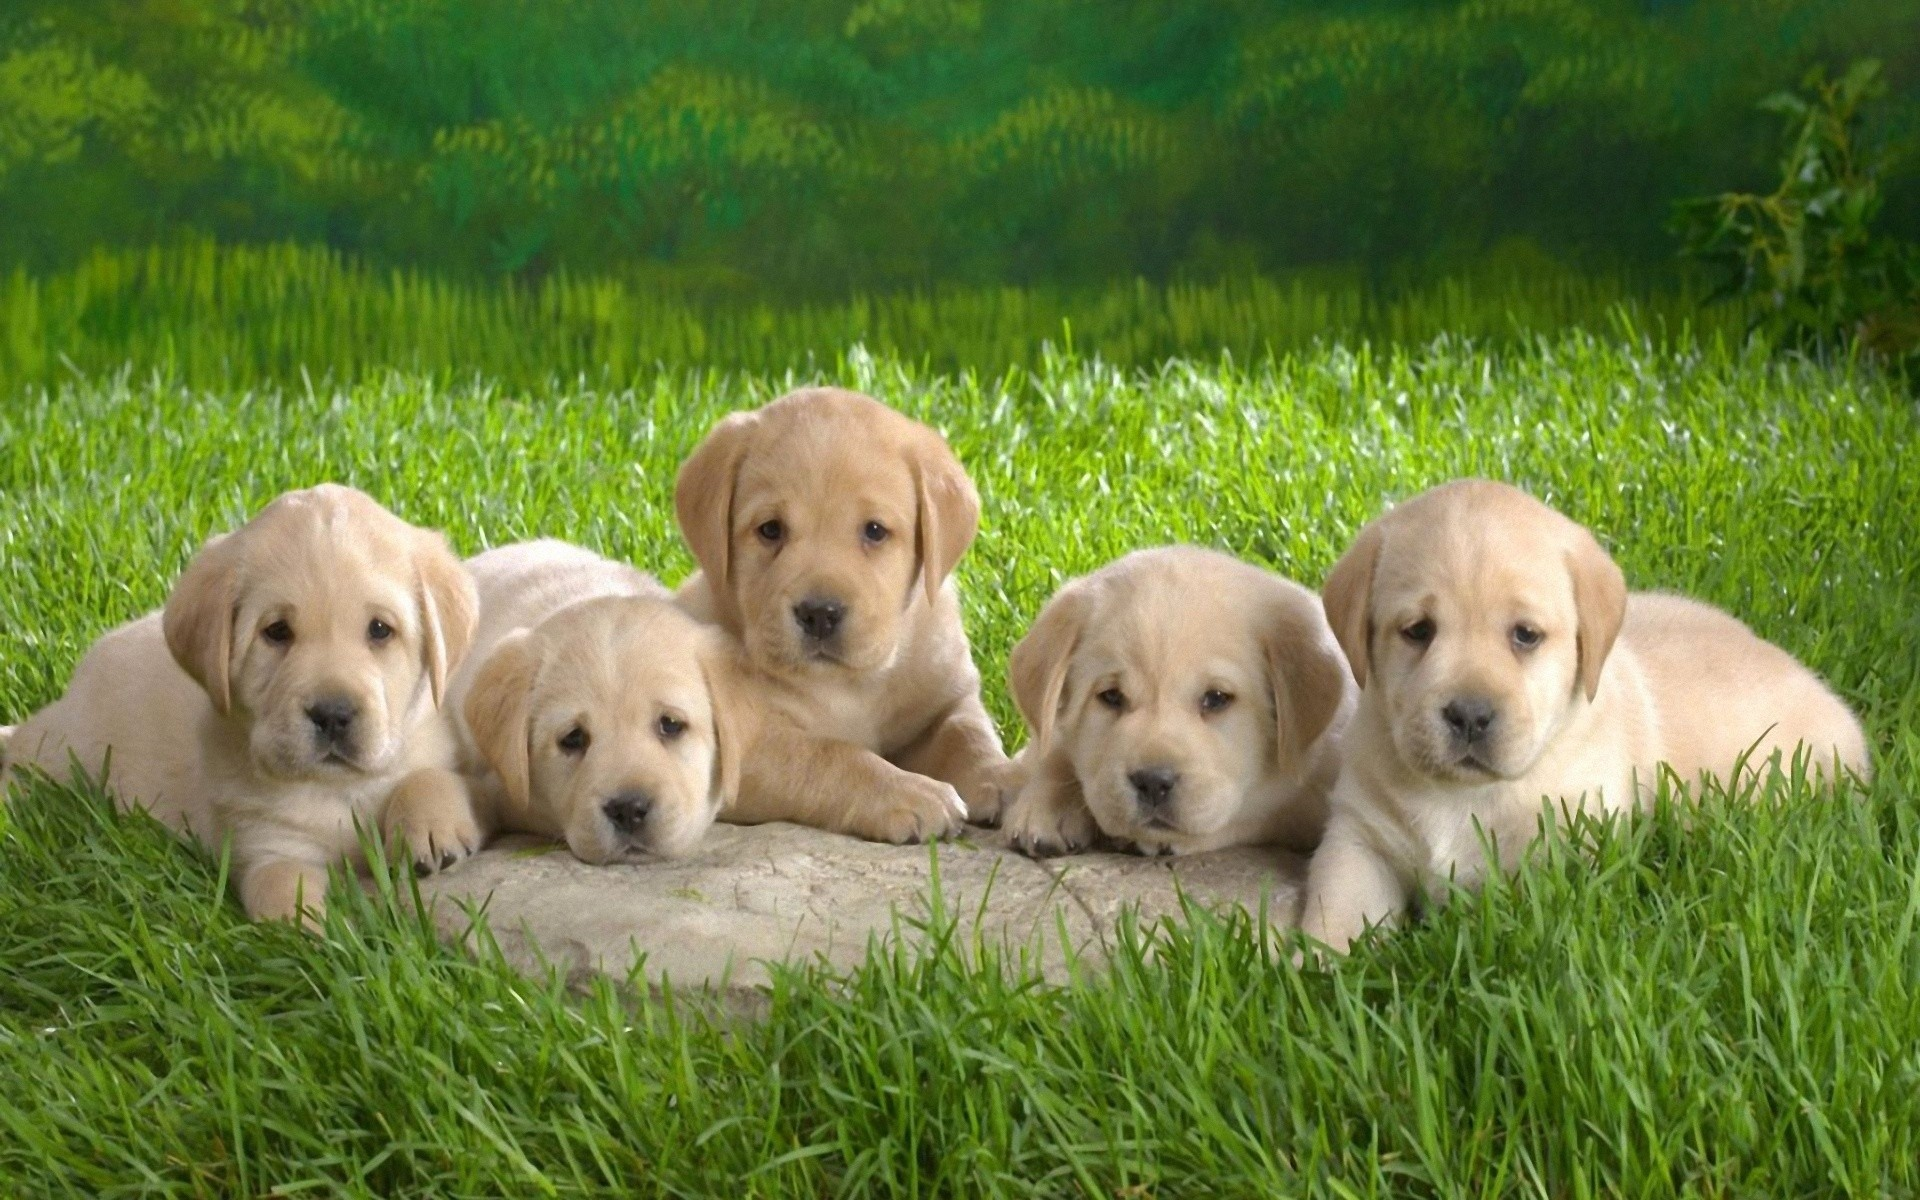 1080x1920 Puppies Wallpaper For Mobile Android | Best HD Wallpapers · Download